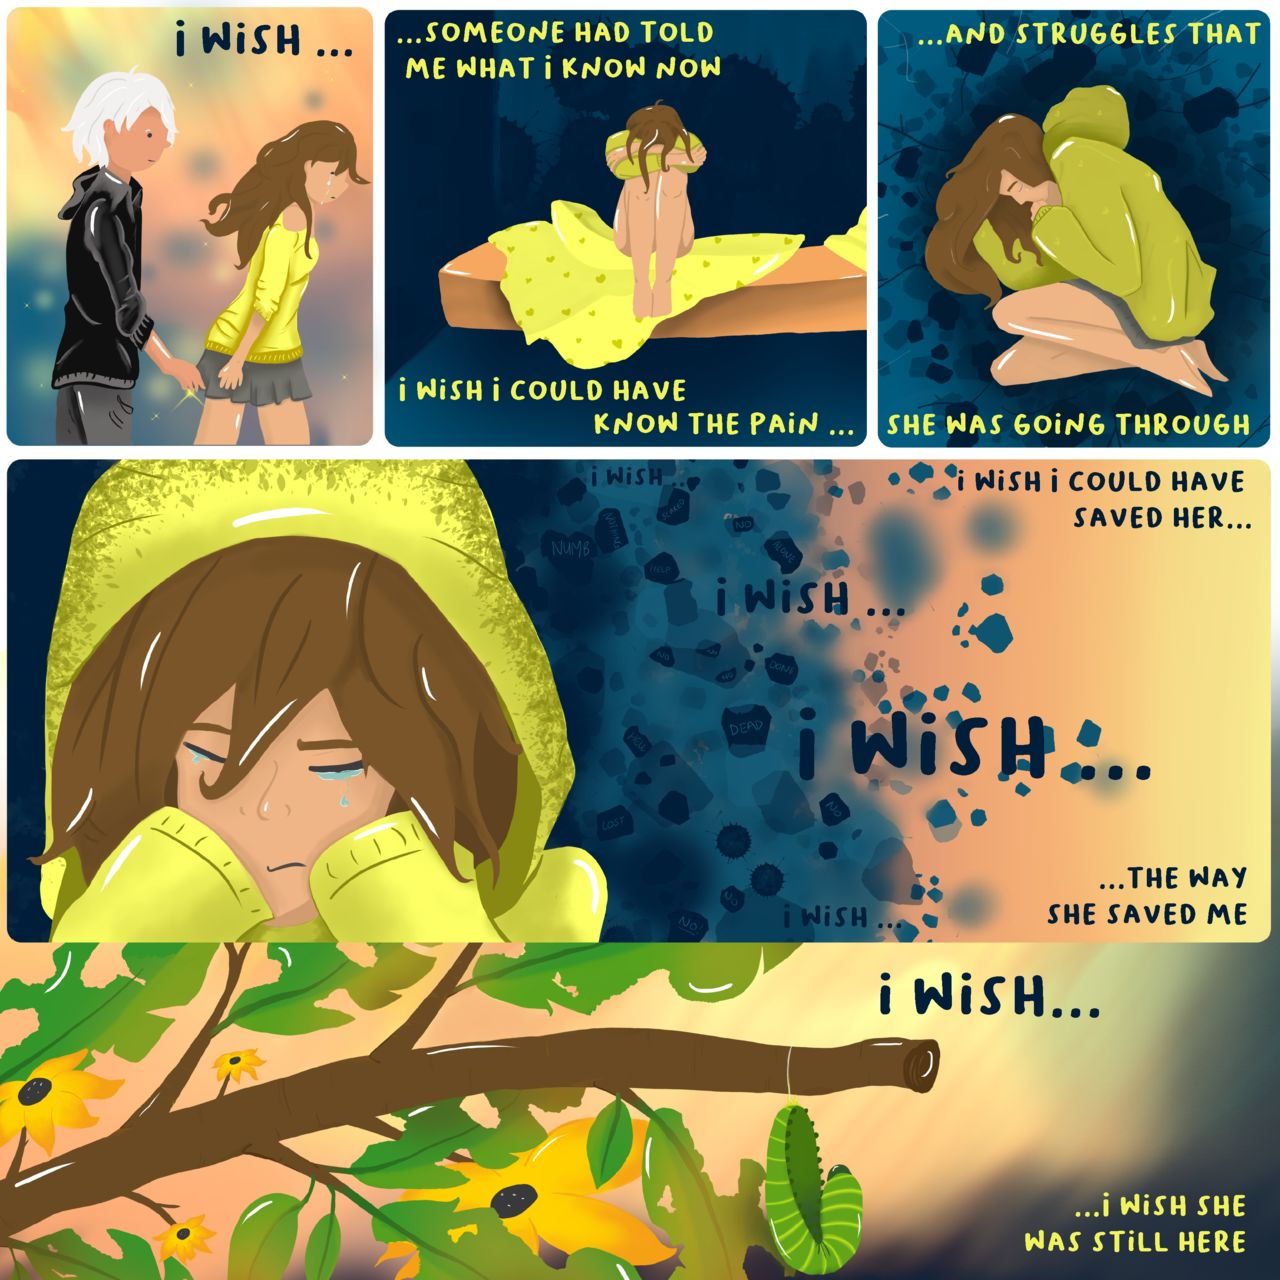 Multi-panel webcomic depicting two people in a relationship, with the male character reflecting on the mental health issues his partner was going through and how he didn't realise and wishes he had and could have helped her. Could have saved her.